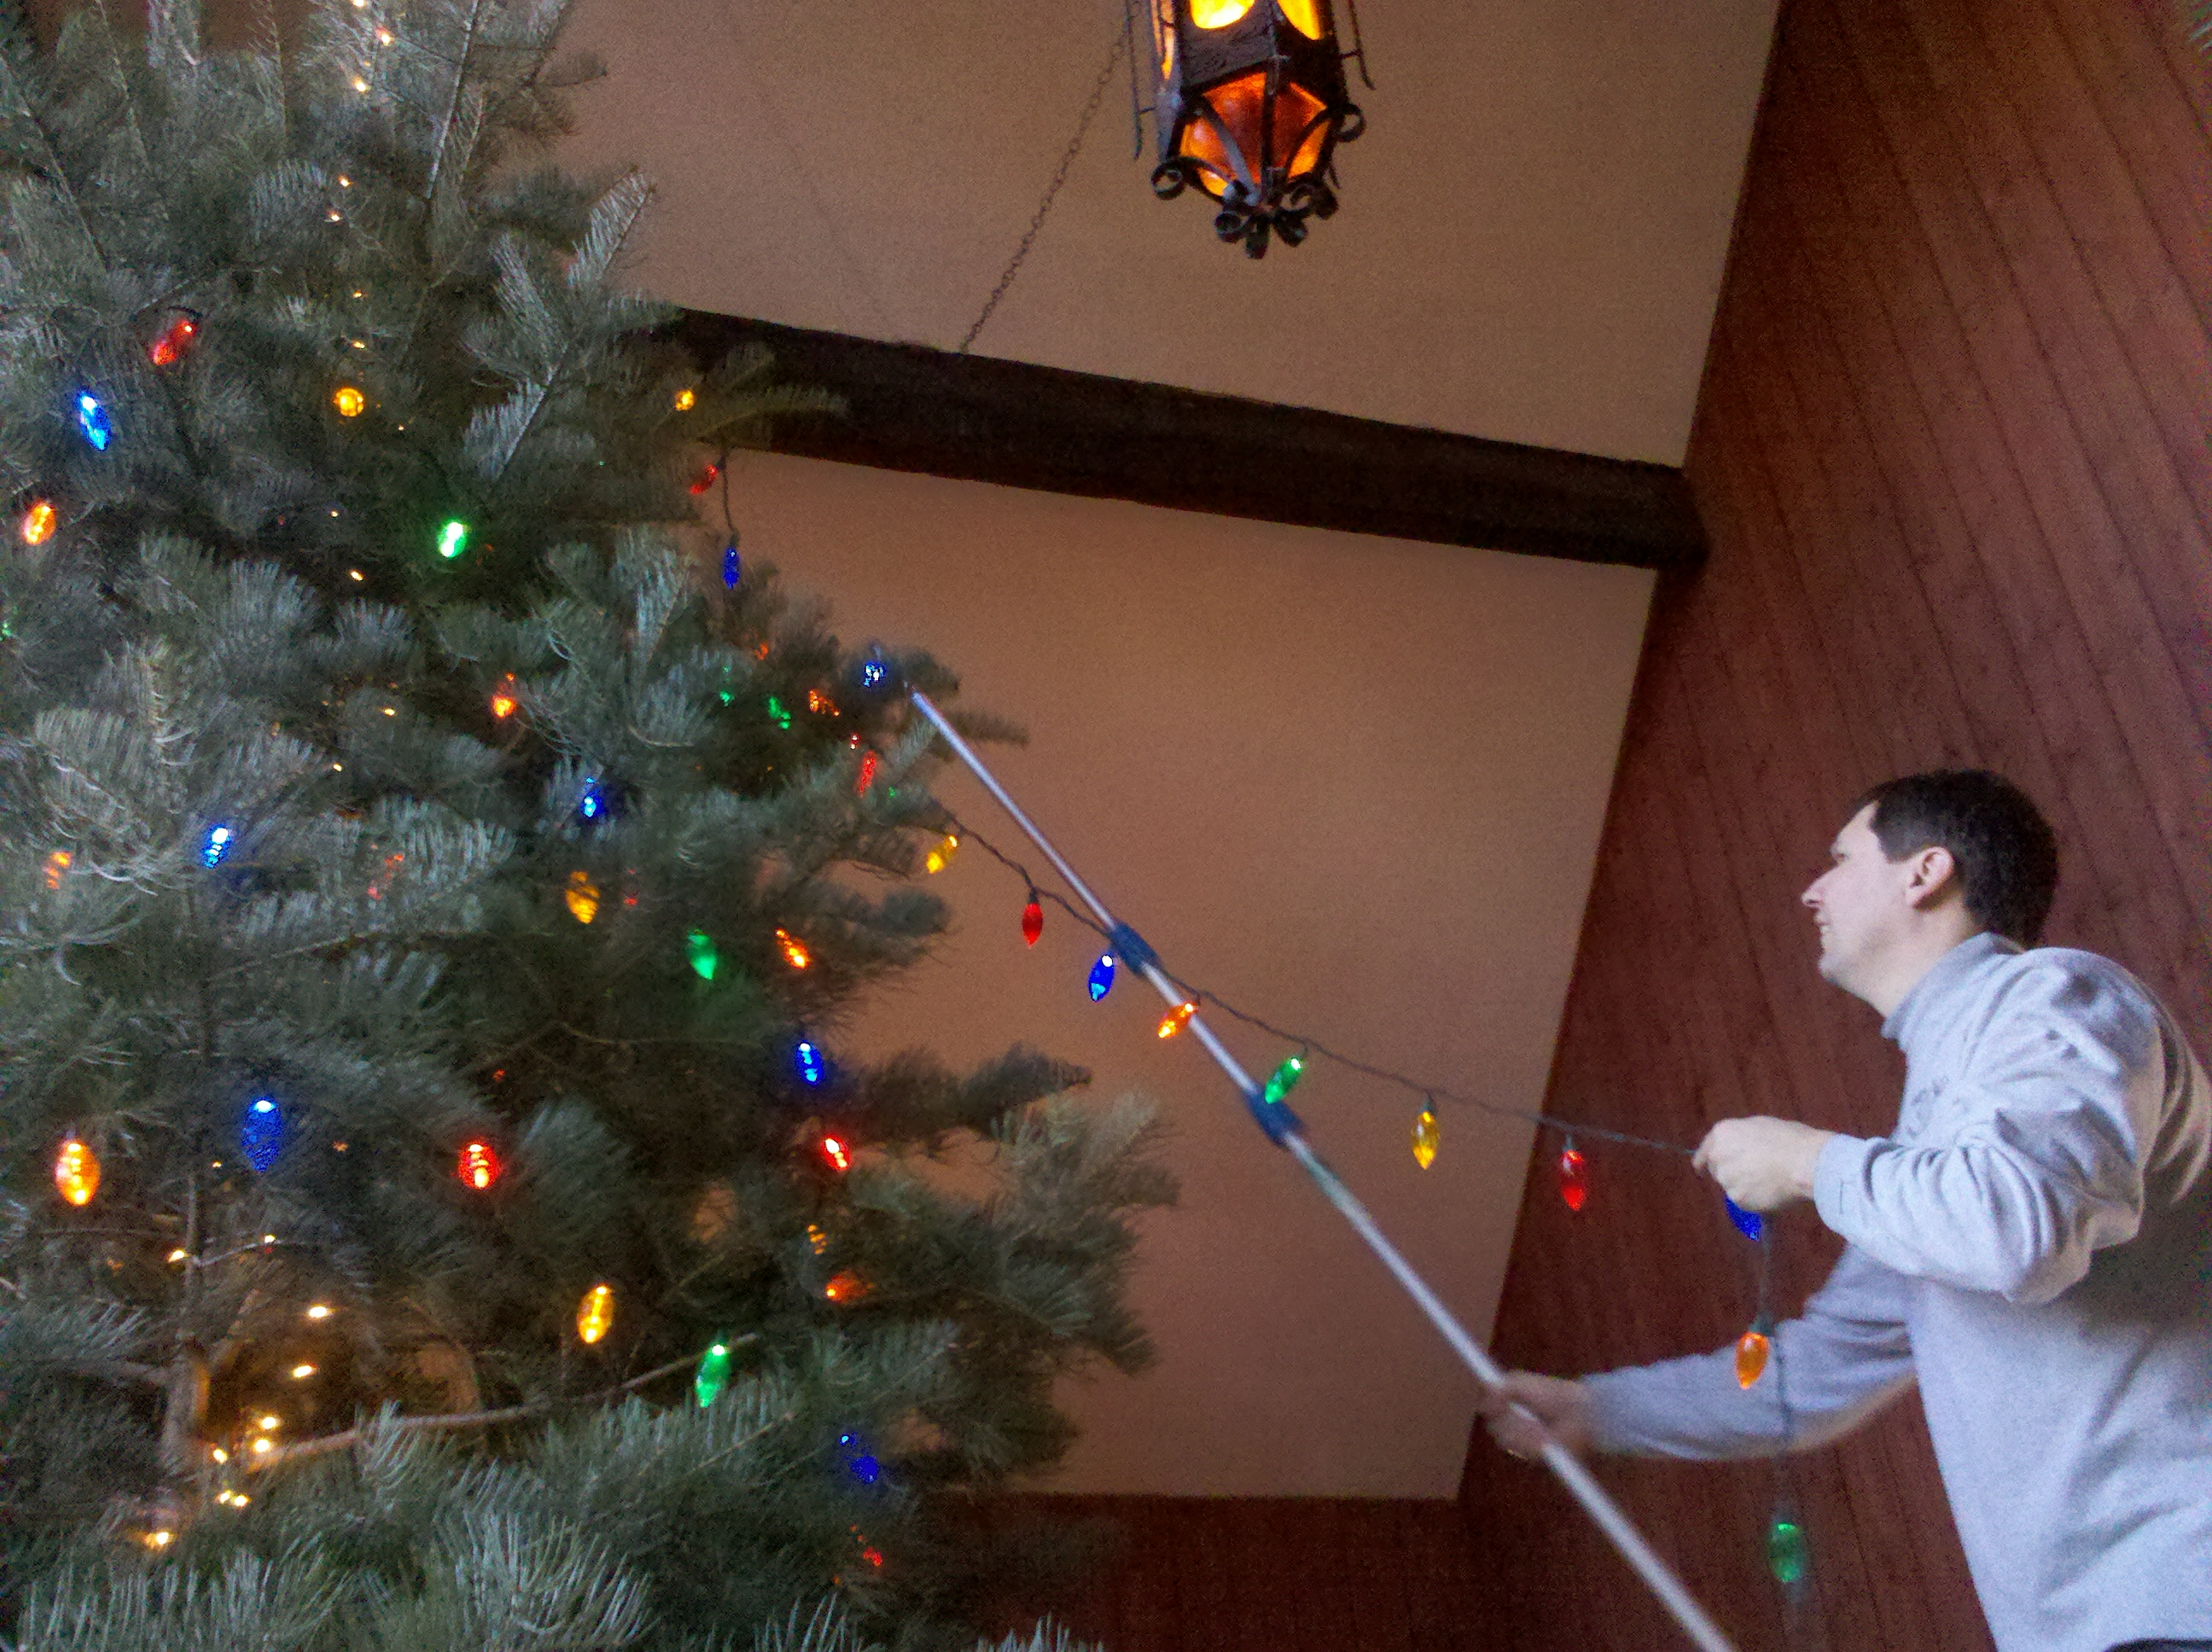 Decorating Tree Extension Pole Duct Tape Hook Ladder